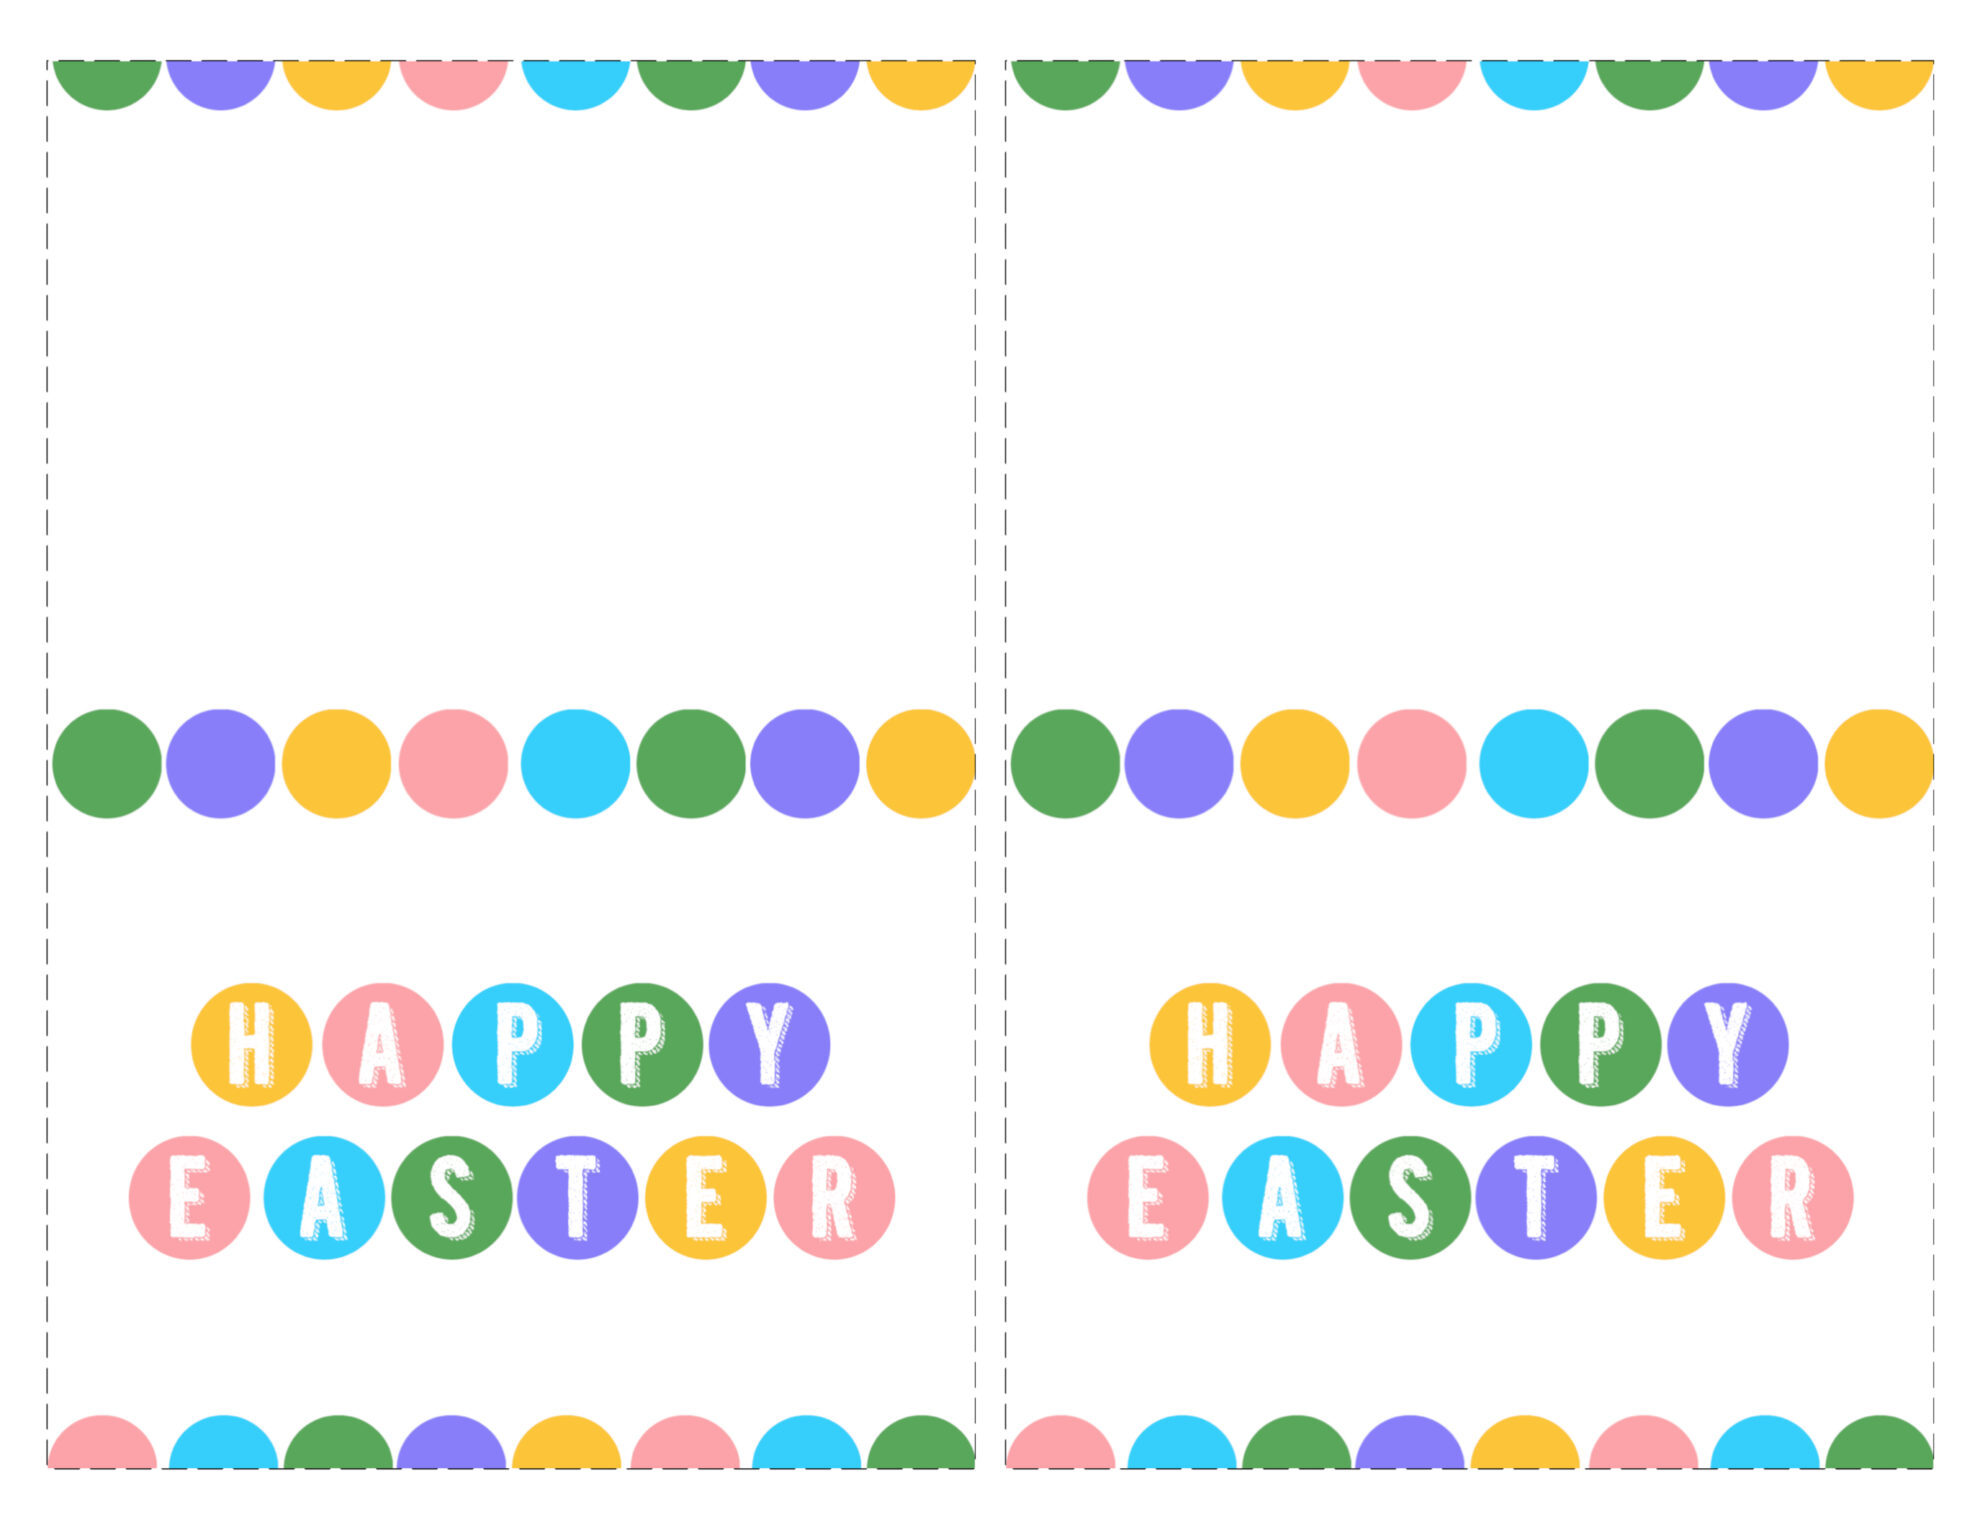 Happy easter cards printable free paper trail design click the following links to print the happy easter cards printable free kristyandbryce Choice Image